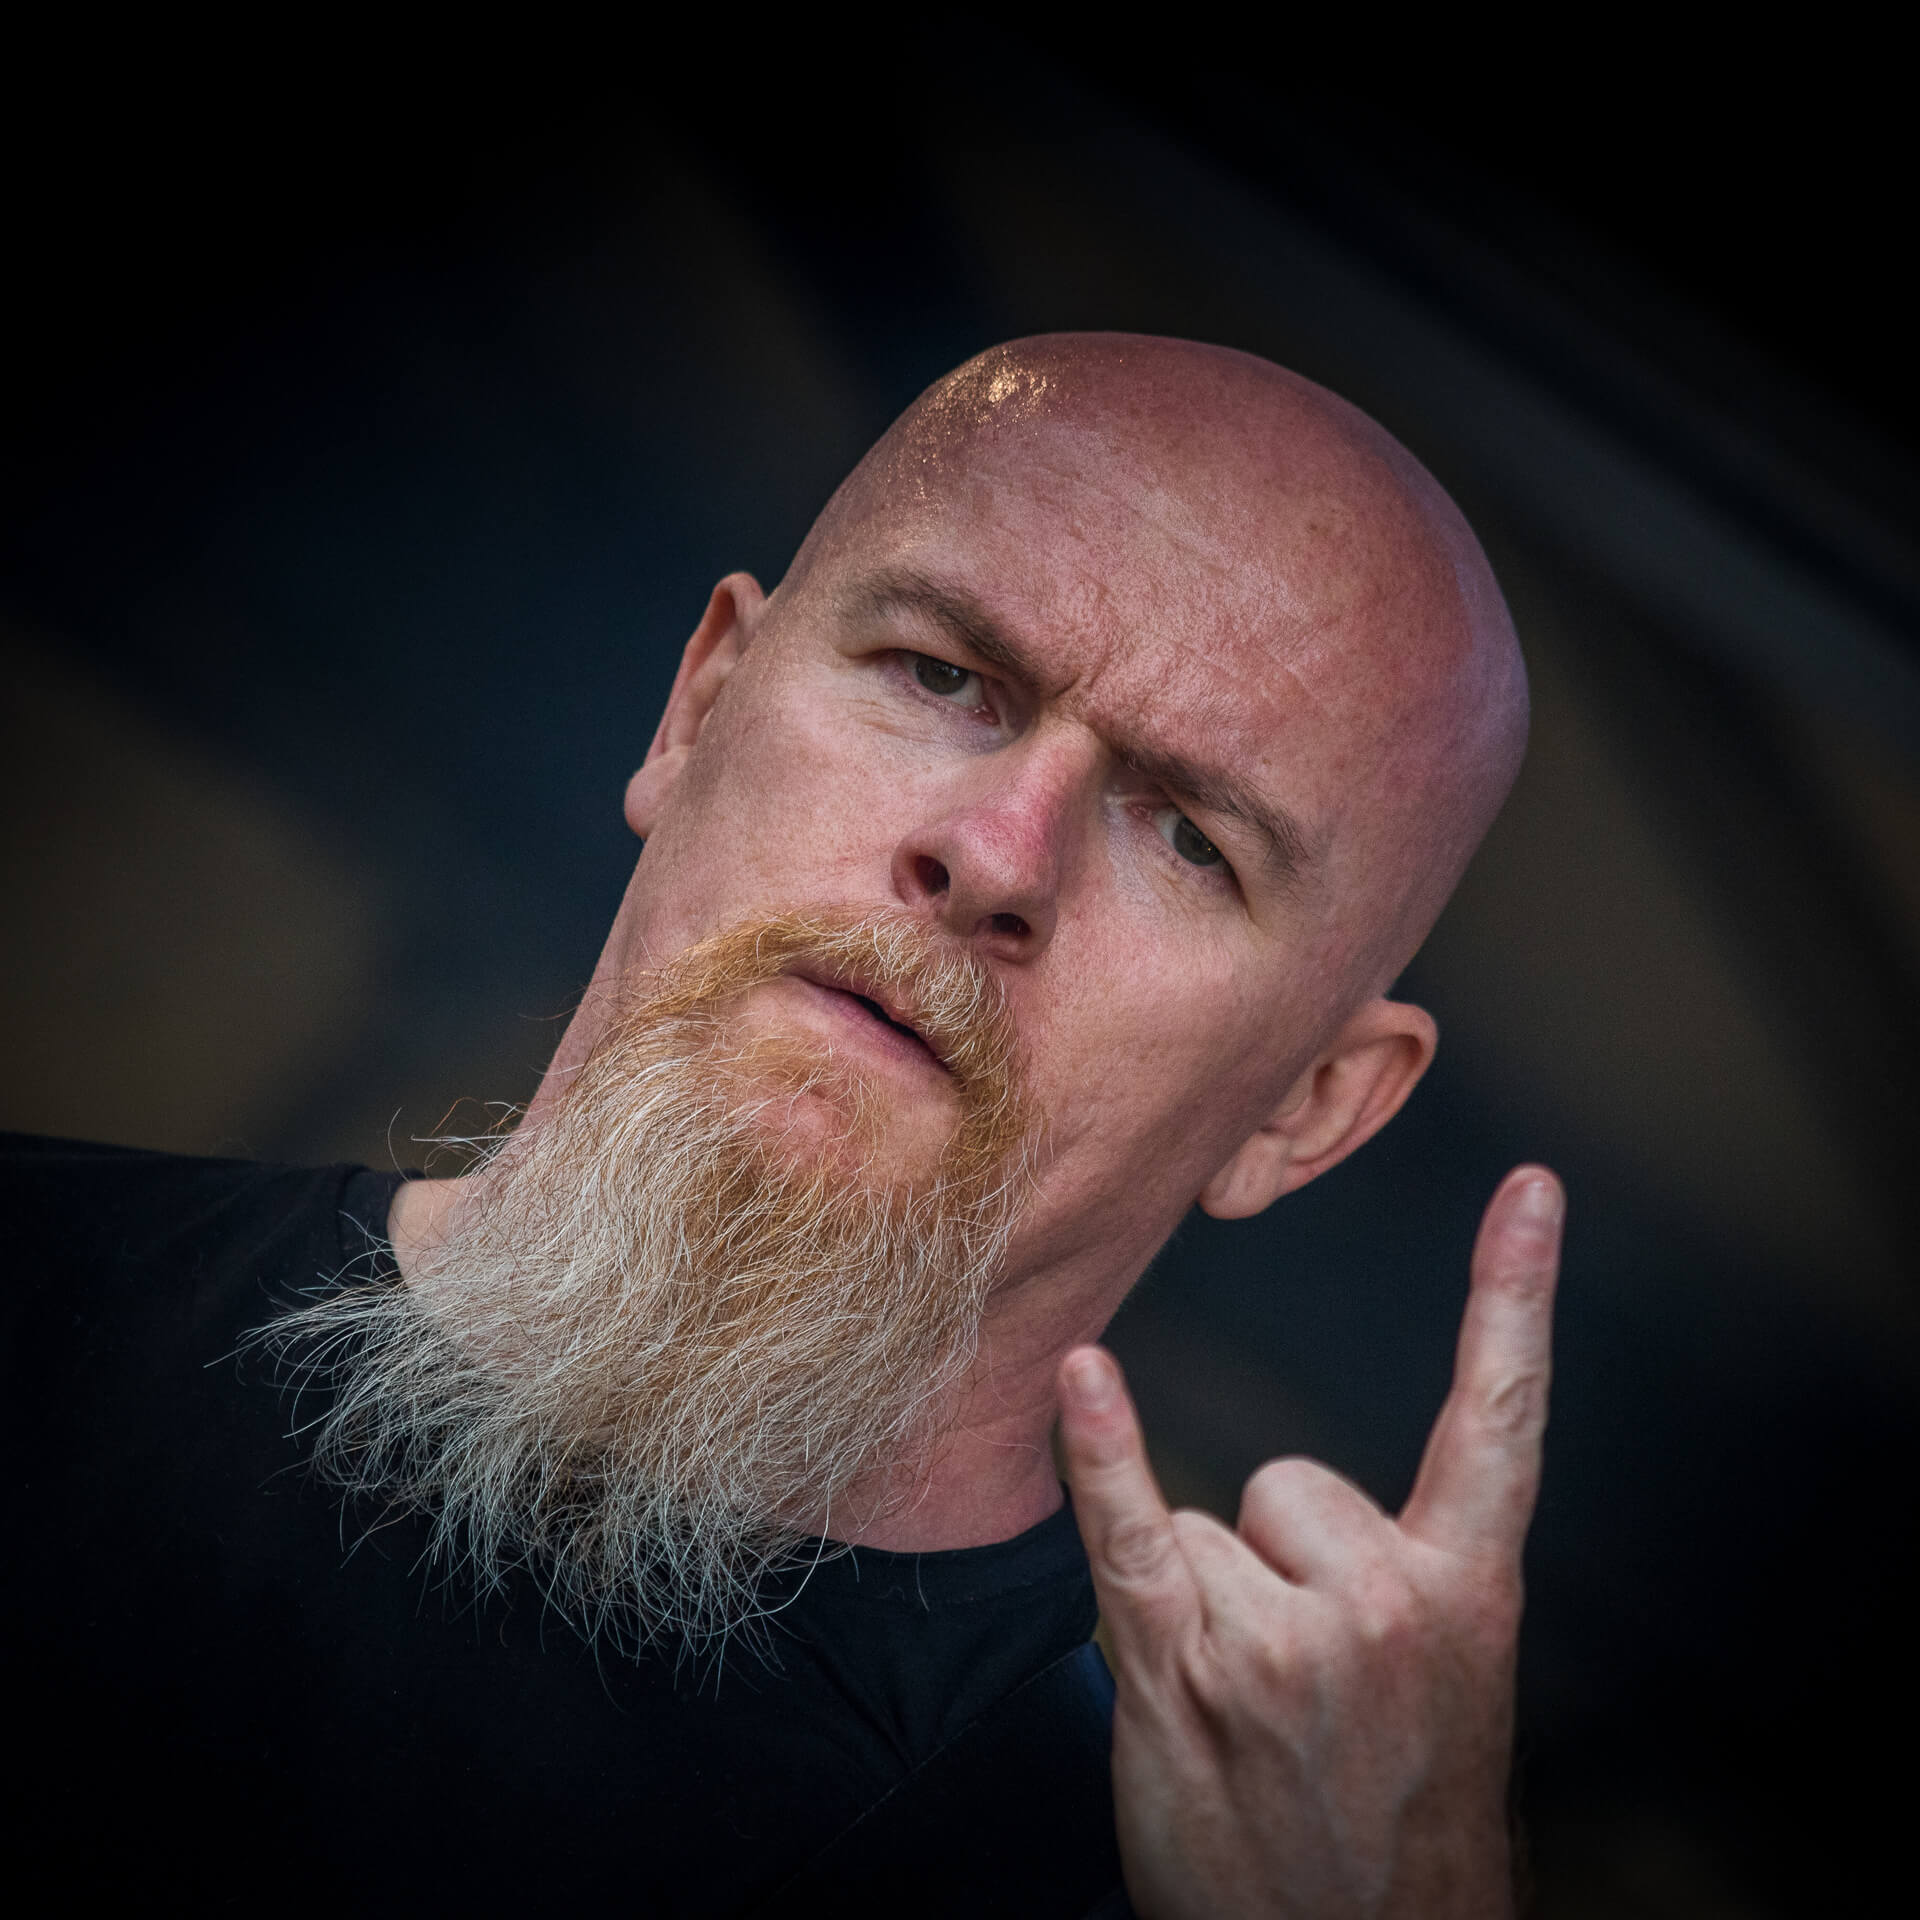 A colour head and shoulders photograph of Glyn Shepherd (The Bassist in Vulcan Raine) as he looks directly at the camera with left hand raised level with his beard in a 'Heavy Metal Devils Horns' pose at The Drunken Monkey 2017 whilst performing with Sabbotage.